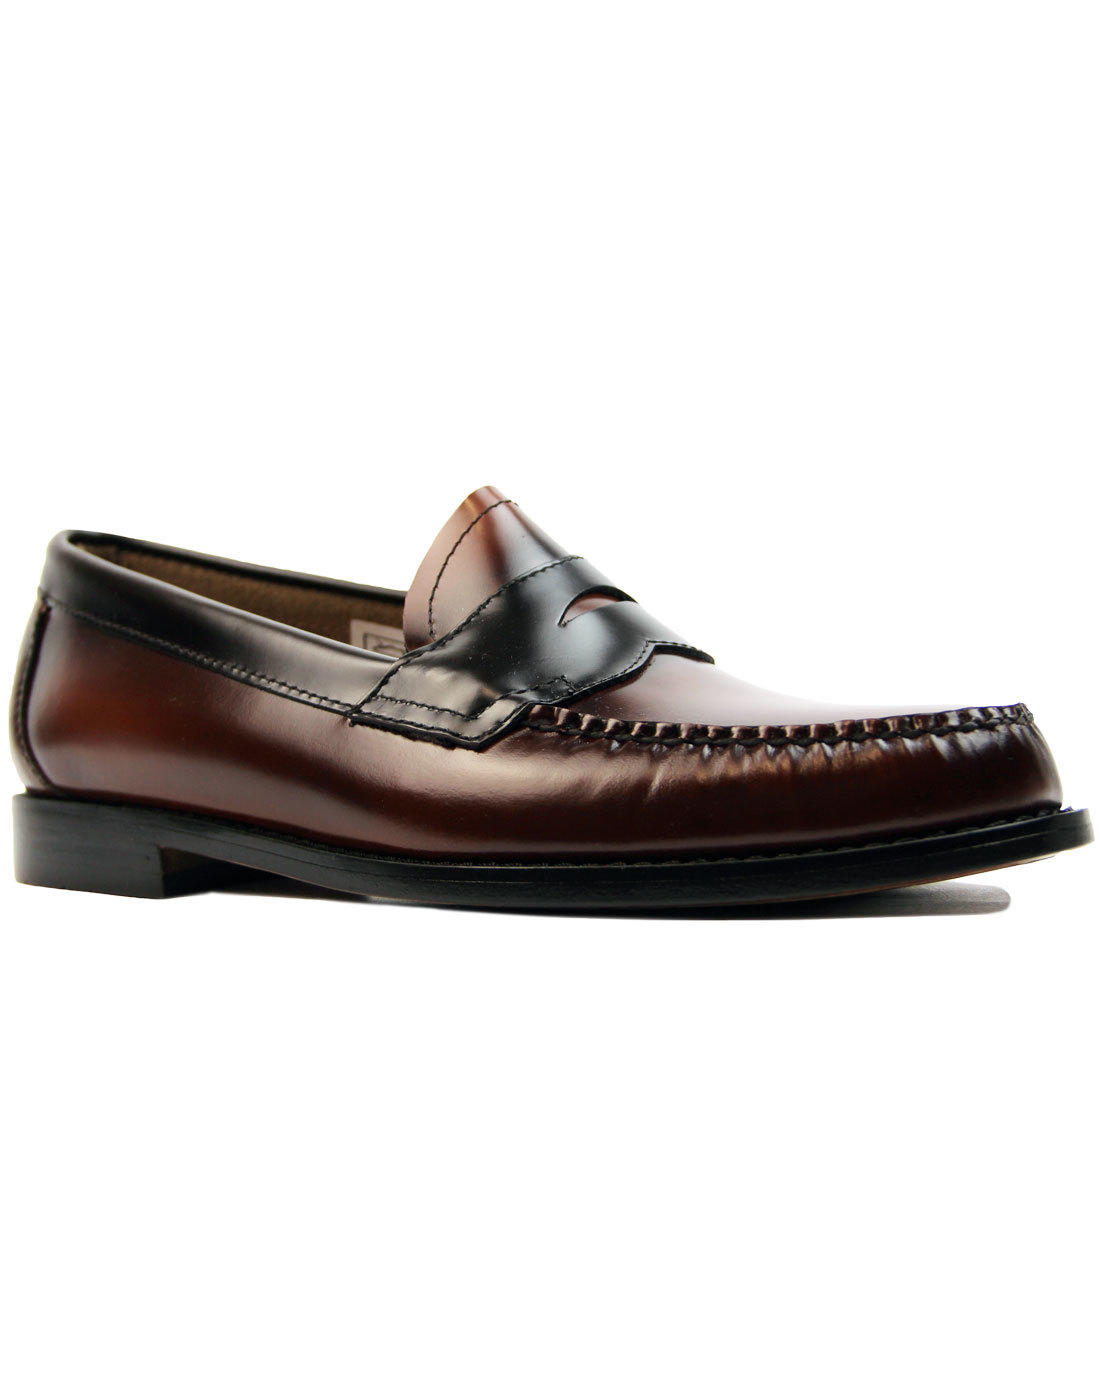 Logan Two Tone BASS WEEJUNS Mod Penny Loafers (TB)